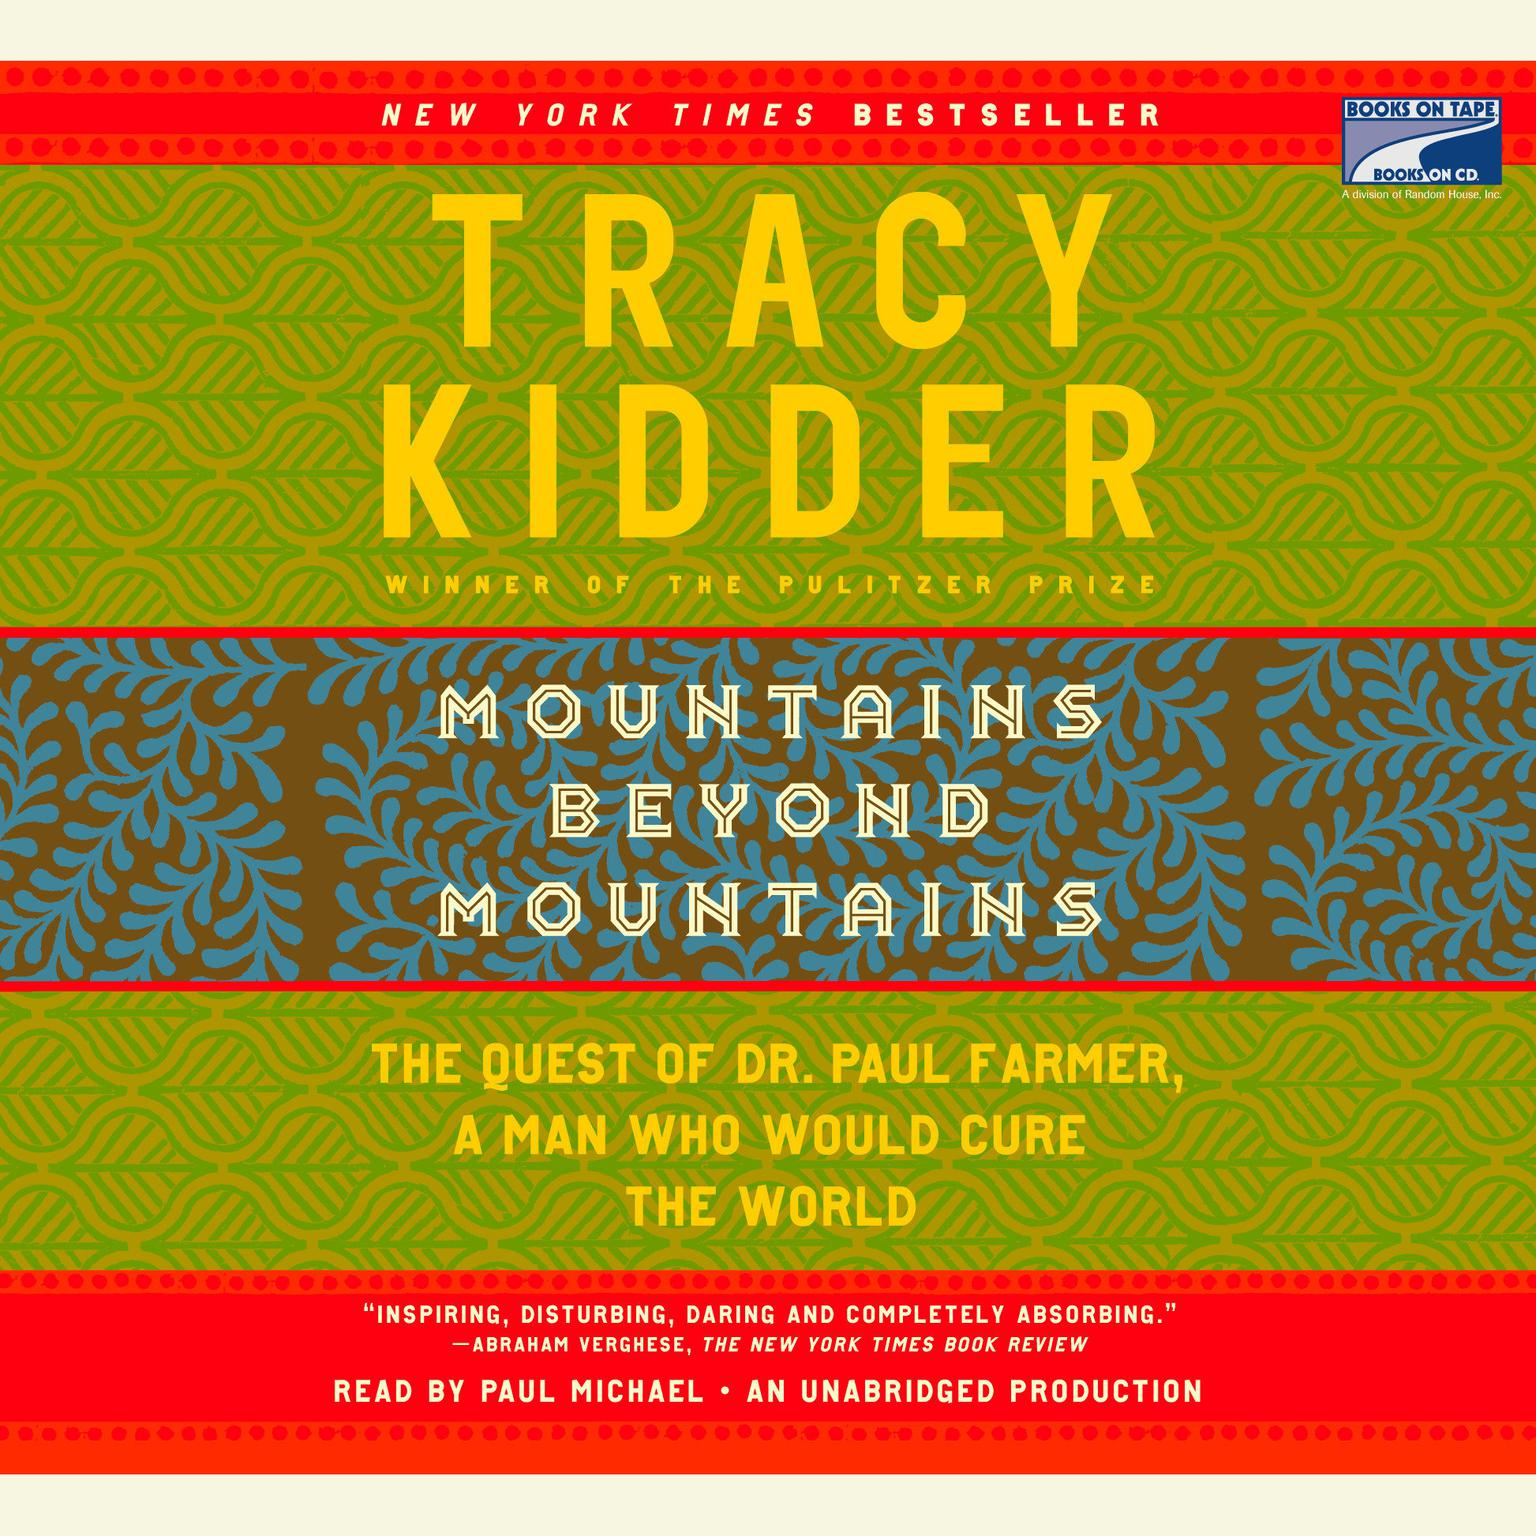 tracy kidders mountains beyond mountains essay My common reading essay--on tracy kidder's mountain's beyond mountains and tom white all play critical roles in mountains beyond mountains by tracy kidder.